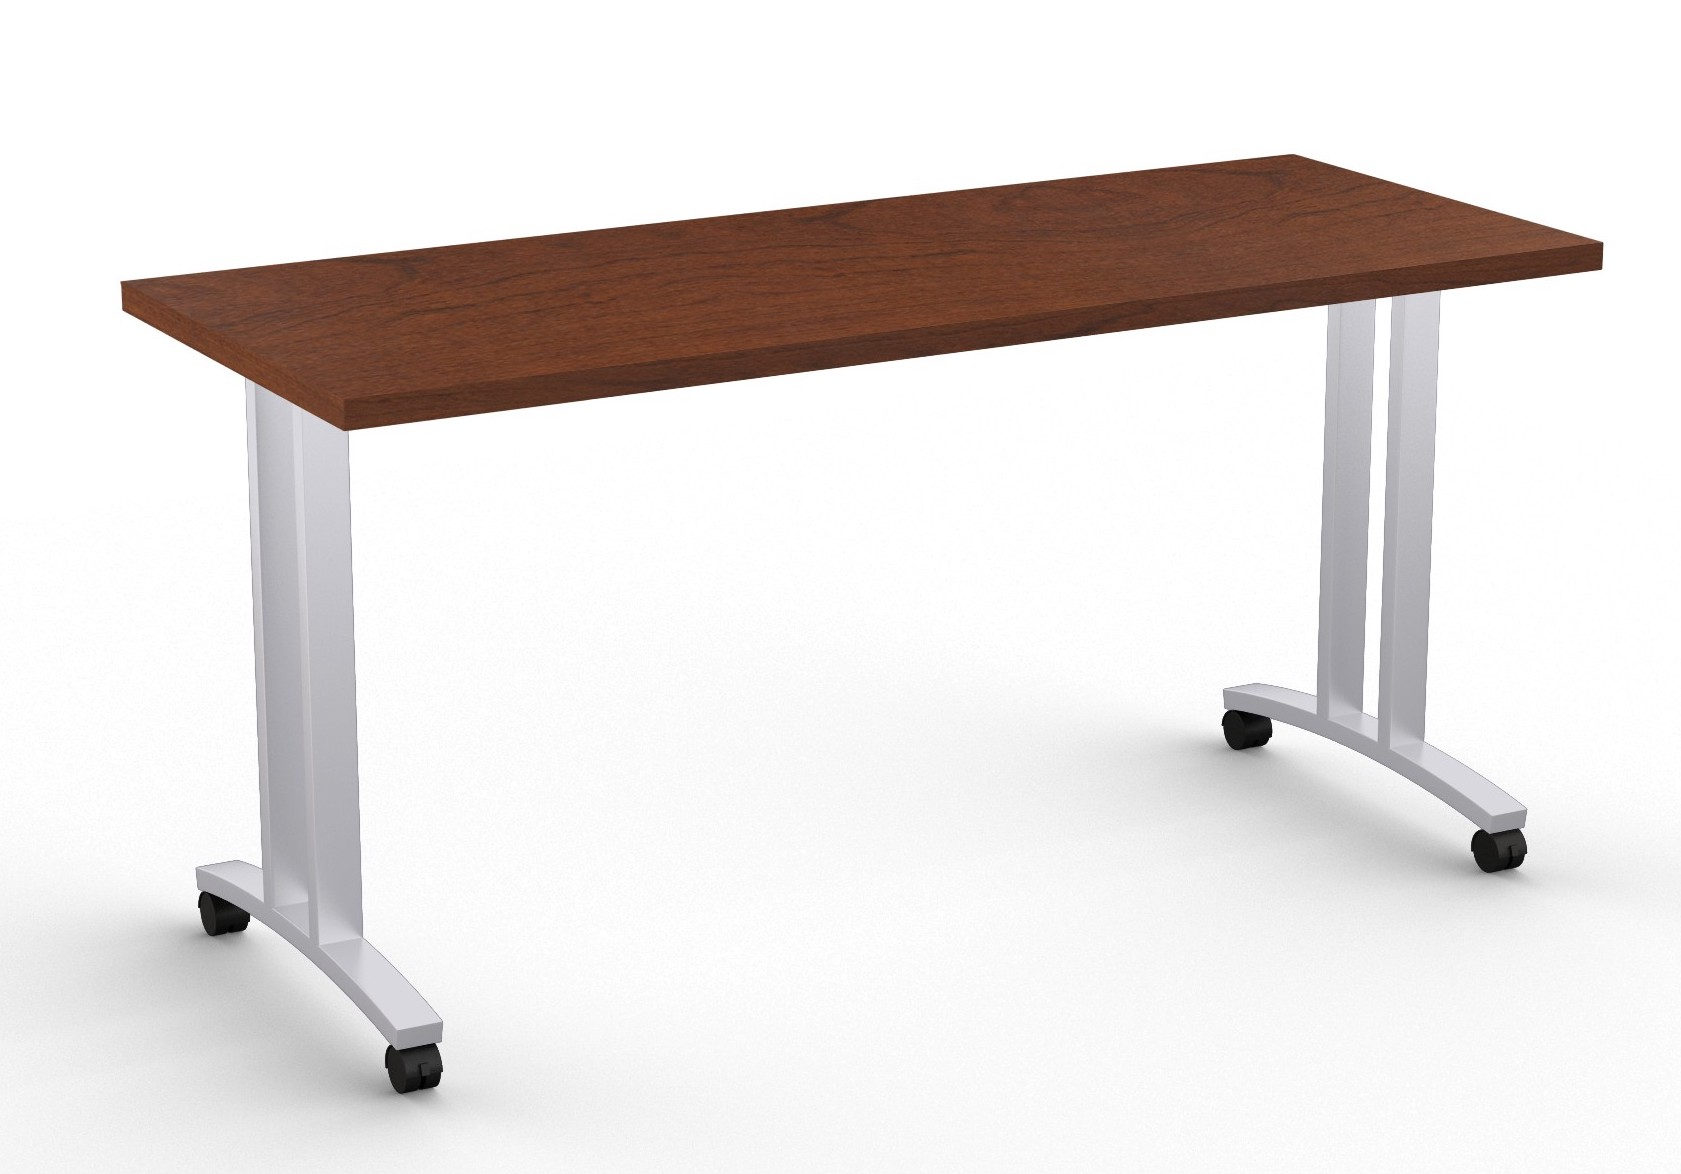 special-t structure t leg training table in mahogany